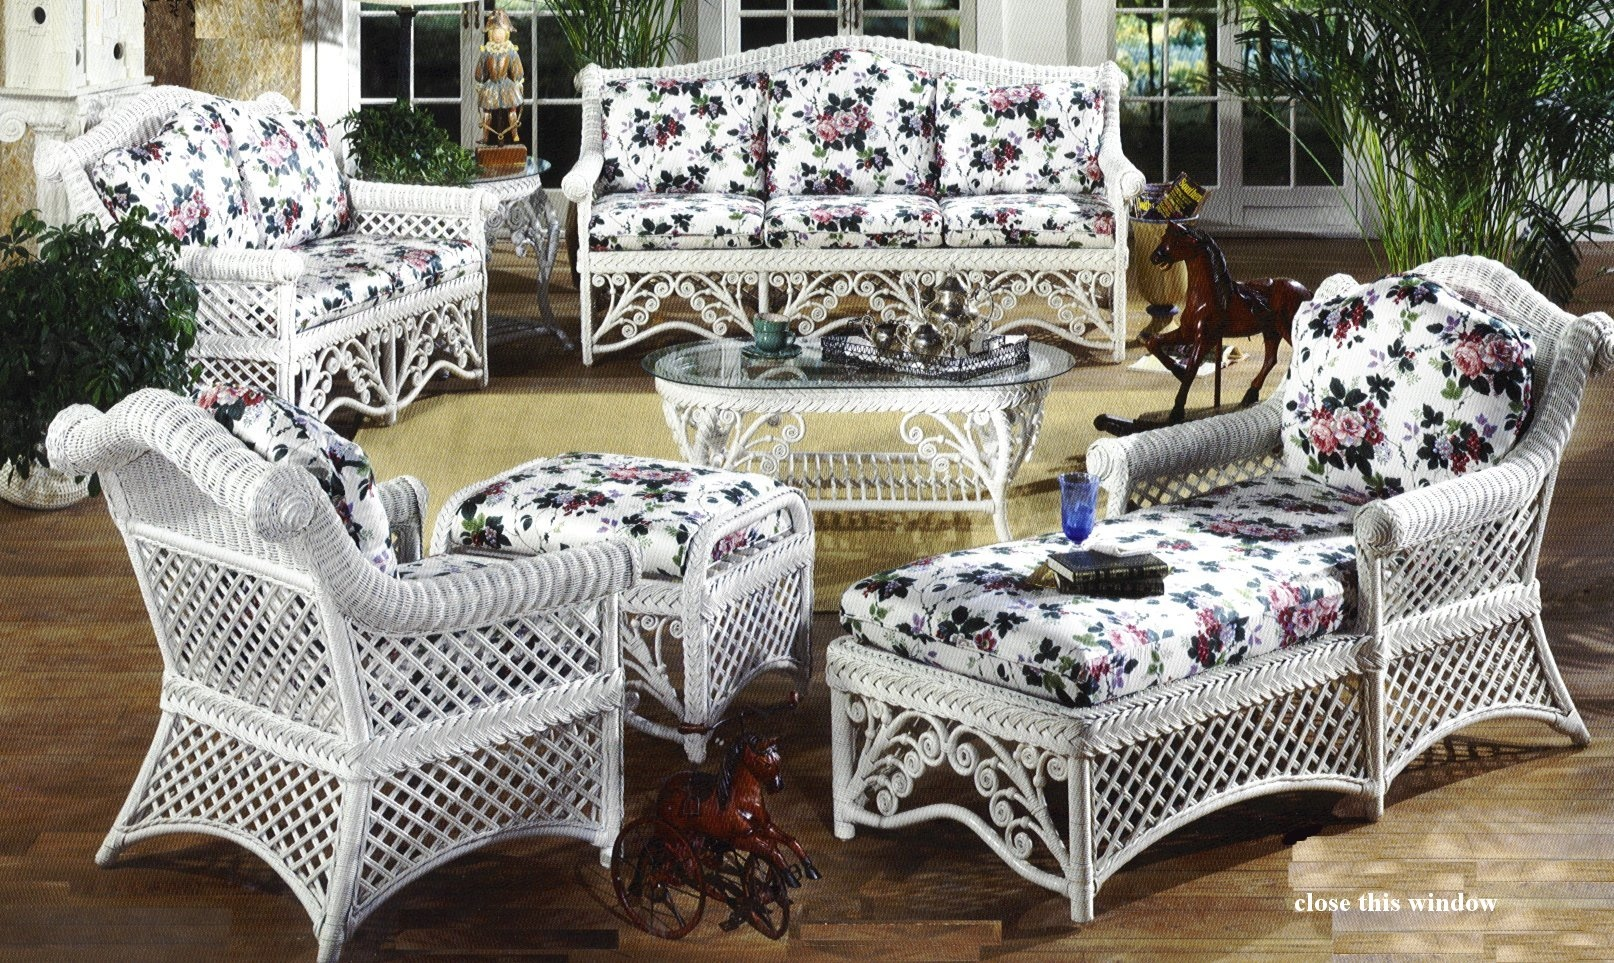 gazebo victorian wicker furniture HHMIYJF